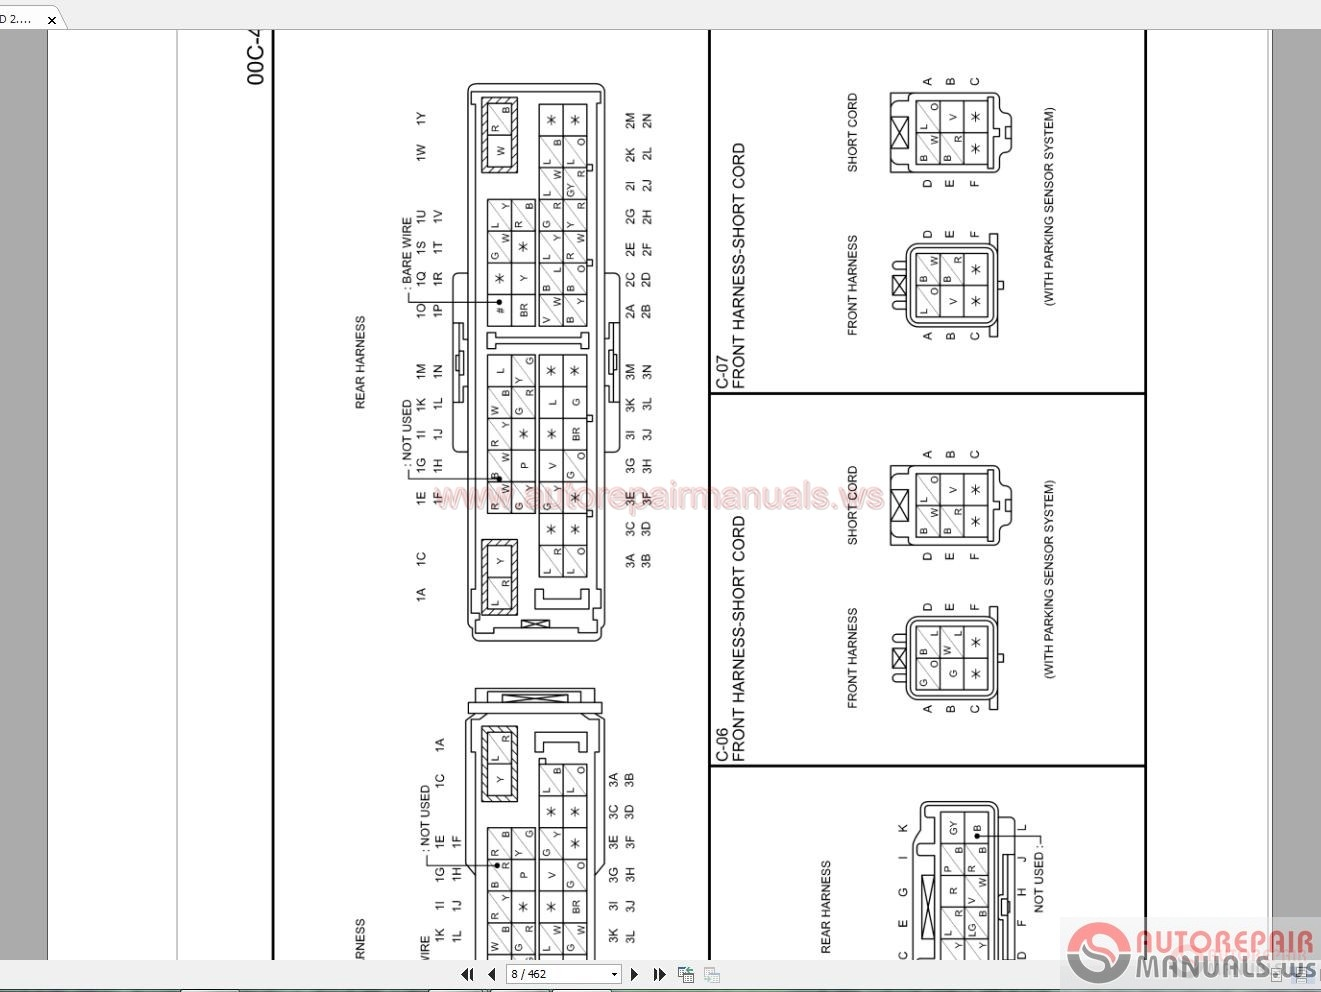 1997 mazda b2300 radio wiring diagram mazda 5 radio wiring diagram